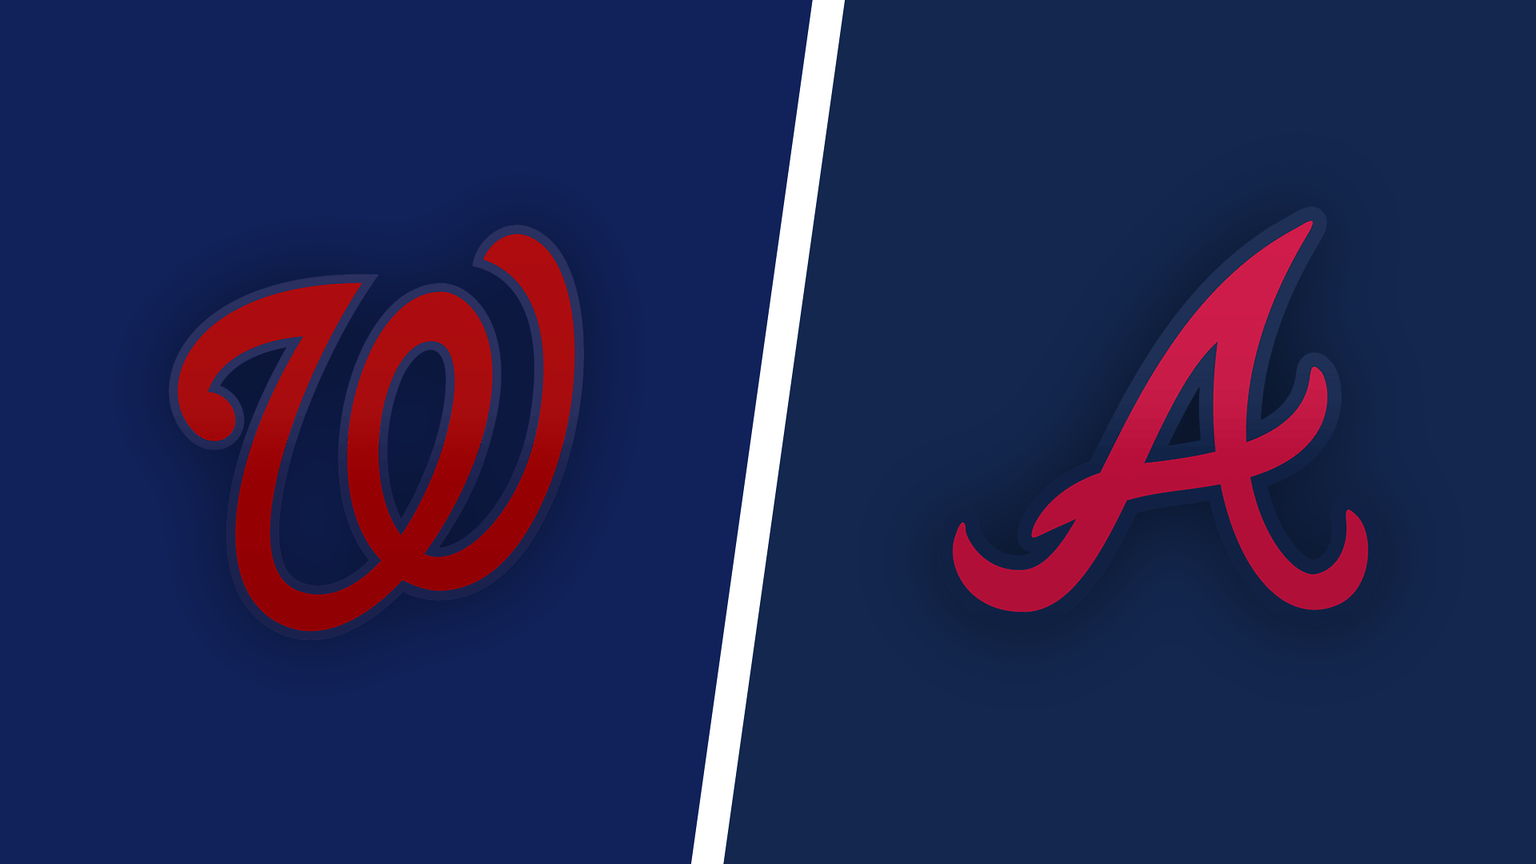 How to Watch Washington Nationals vs. Atlanta Braves on April 7, 2021 Live Online: Doubleheader TV Channels